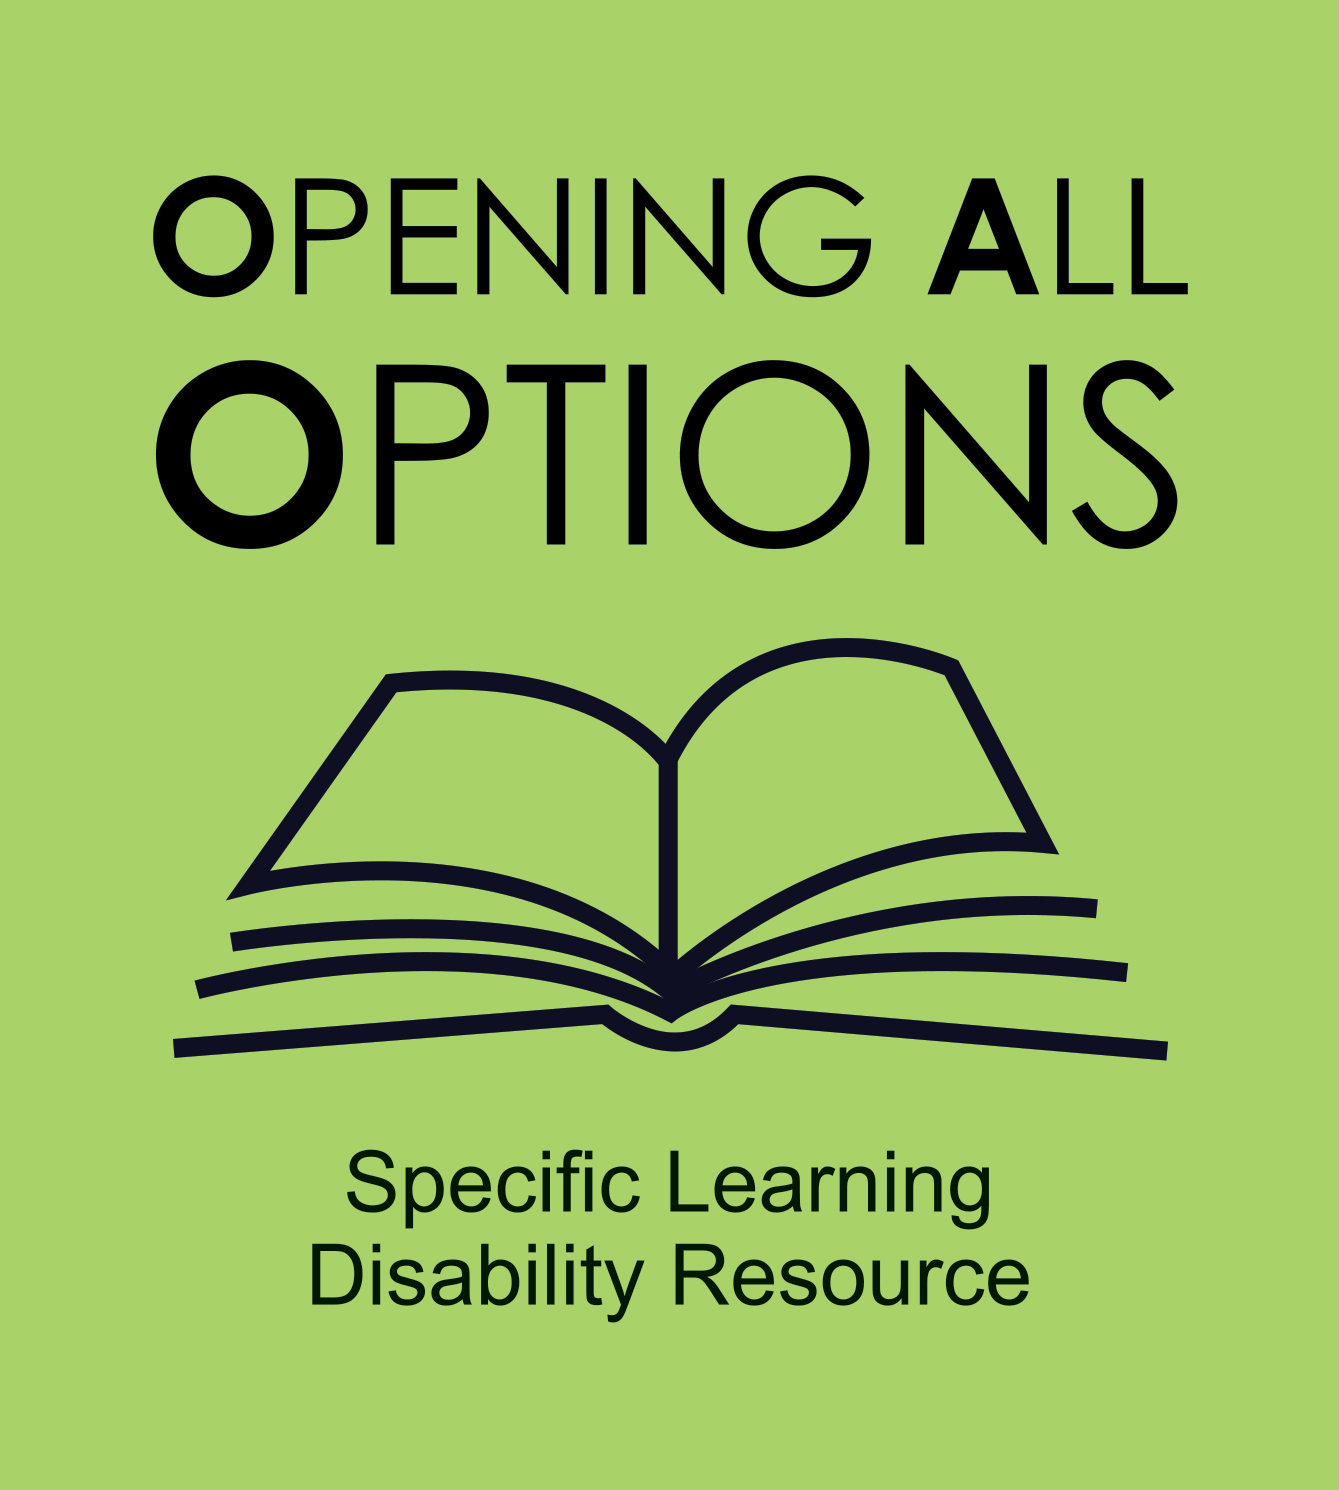 Text. Opening All Options. Specific Learning Disability Resource.  With line drawing of an open book.